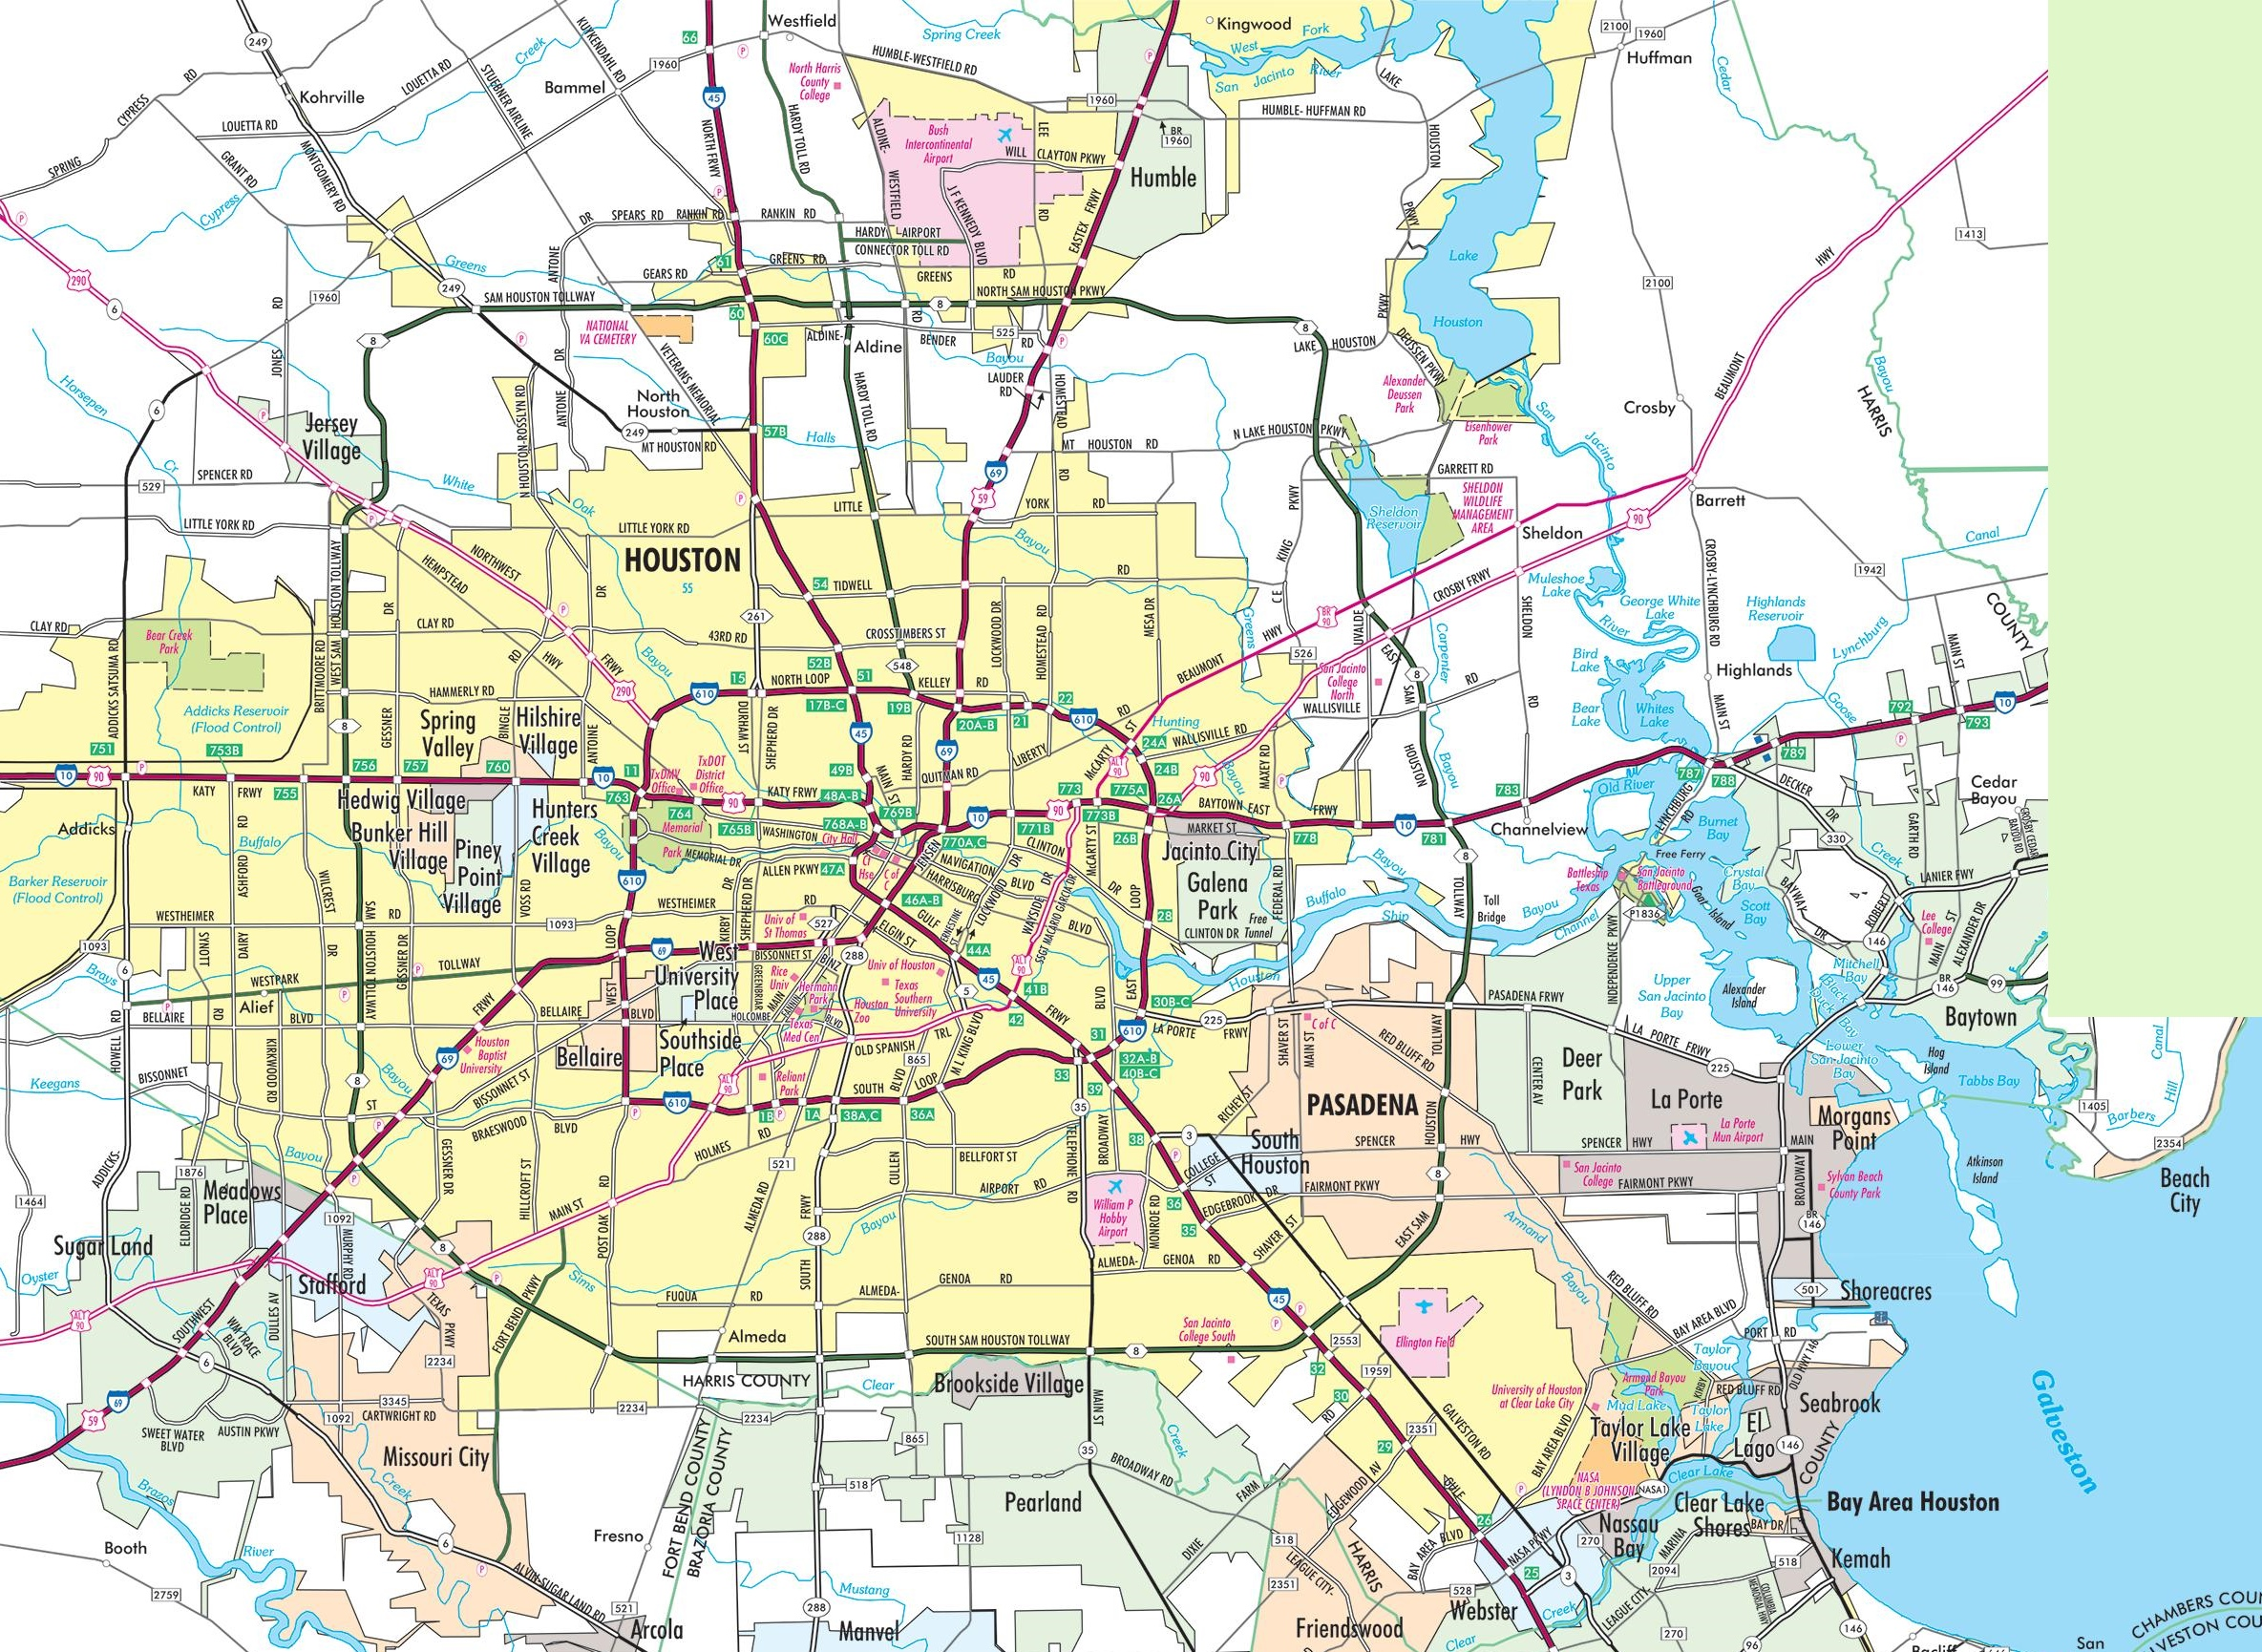 Houston Map Printable Printable Maps - Printable map of houston